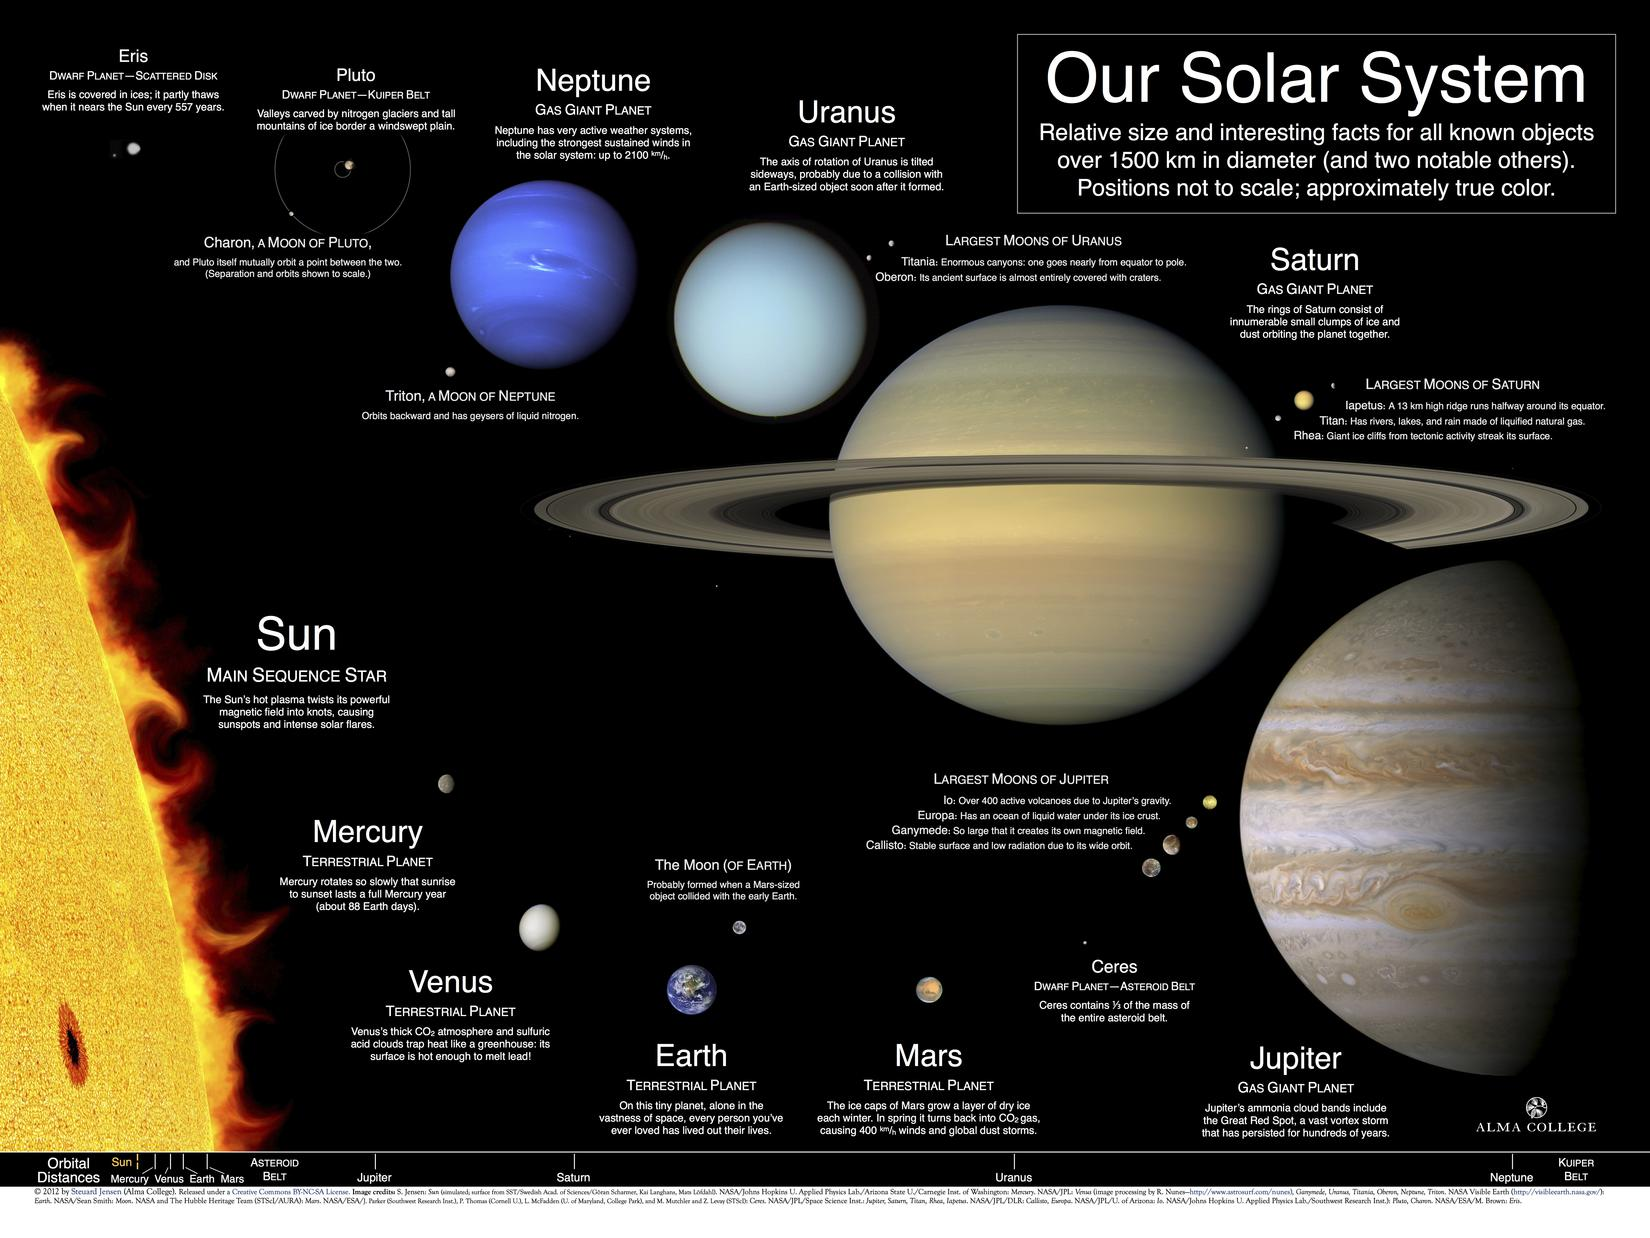 Our Solar System: A poster and index of best available planet images